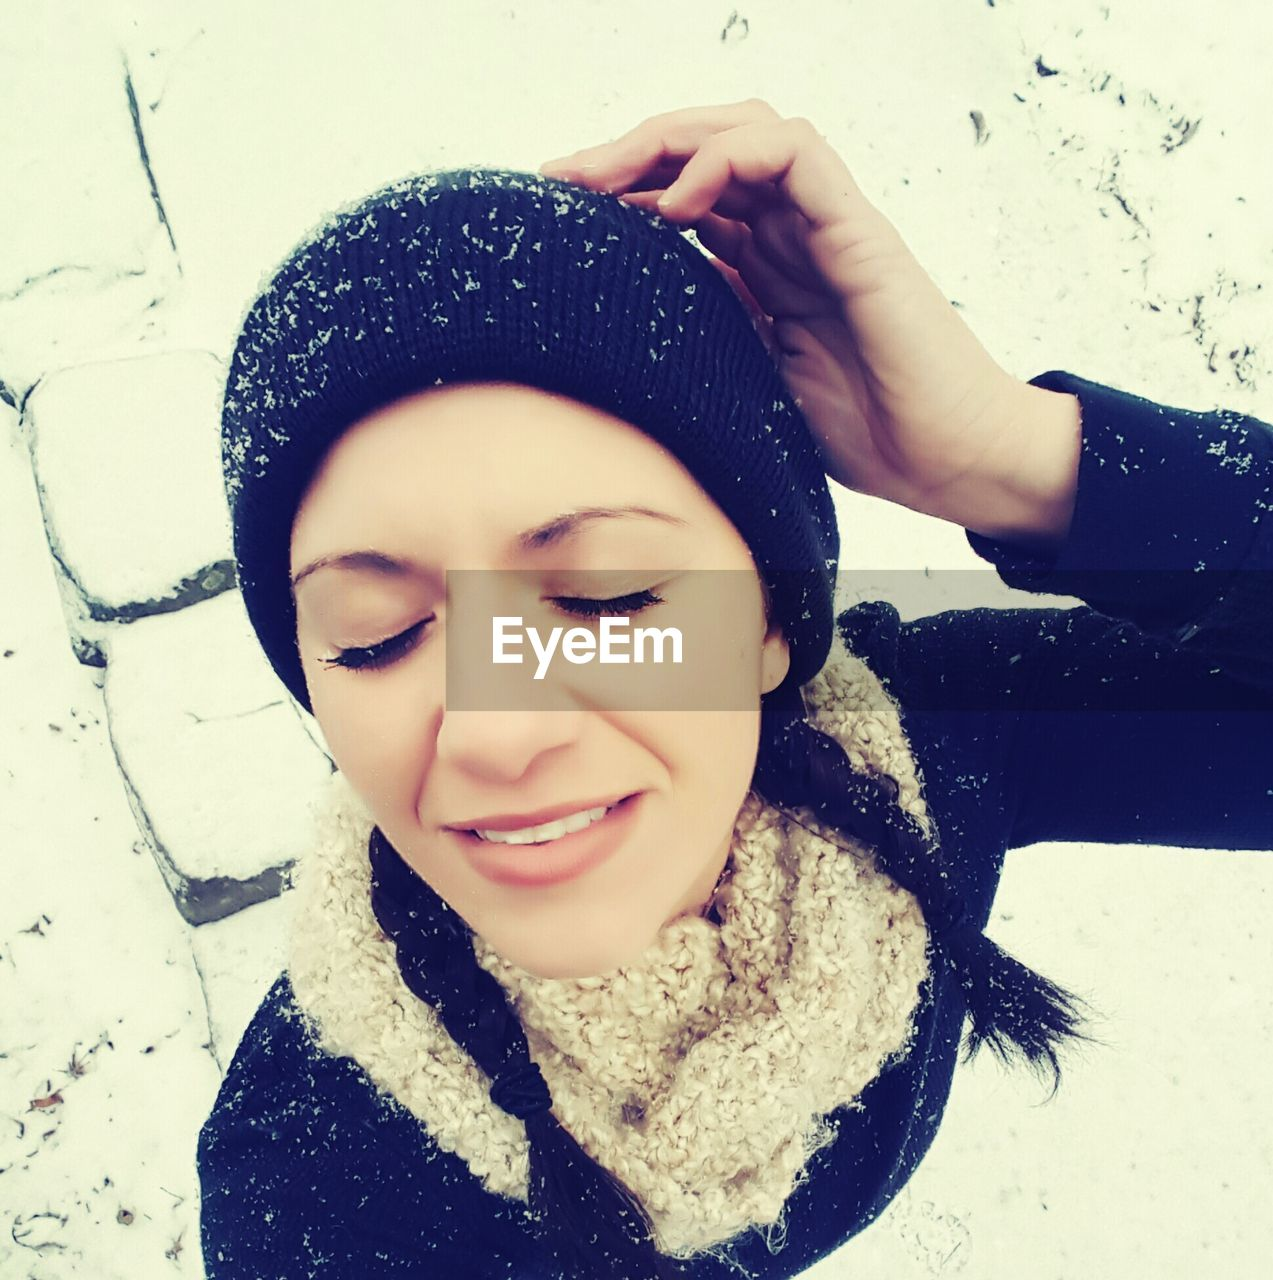 High Angle View Of Woman With Eyes Closed Wearing Knit Hat During Winter